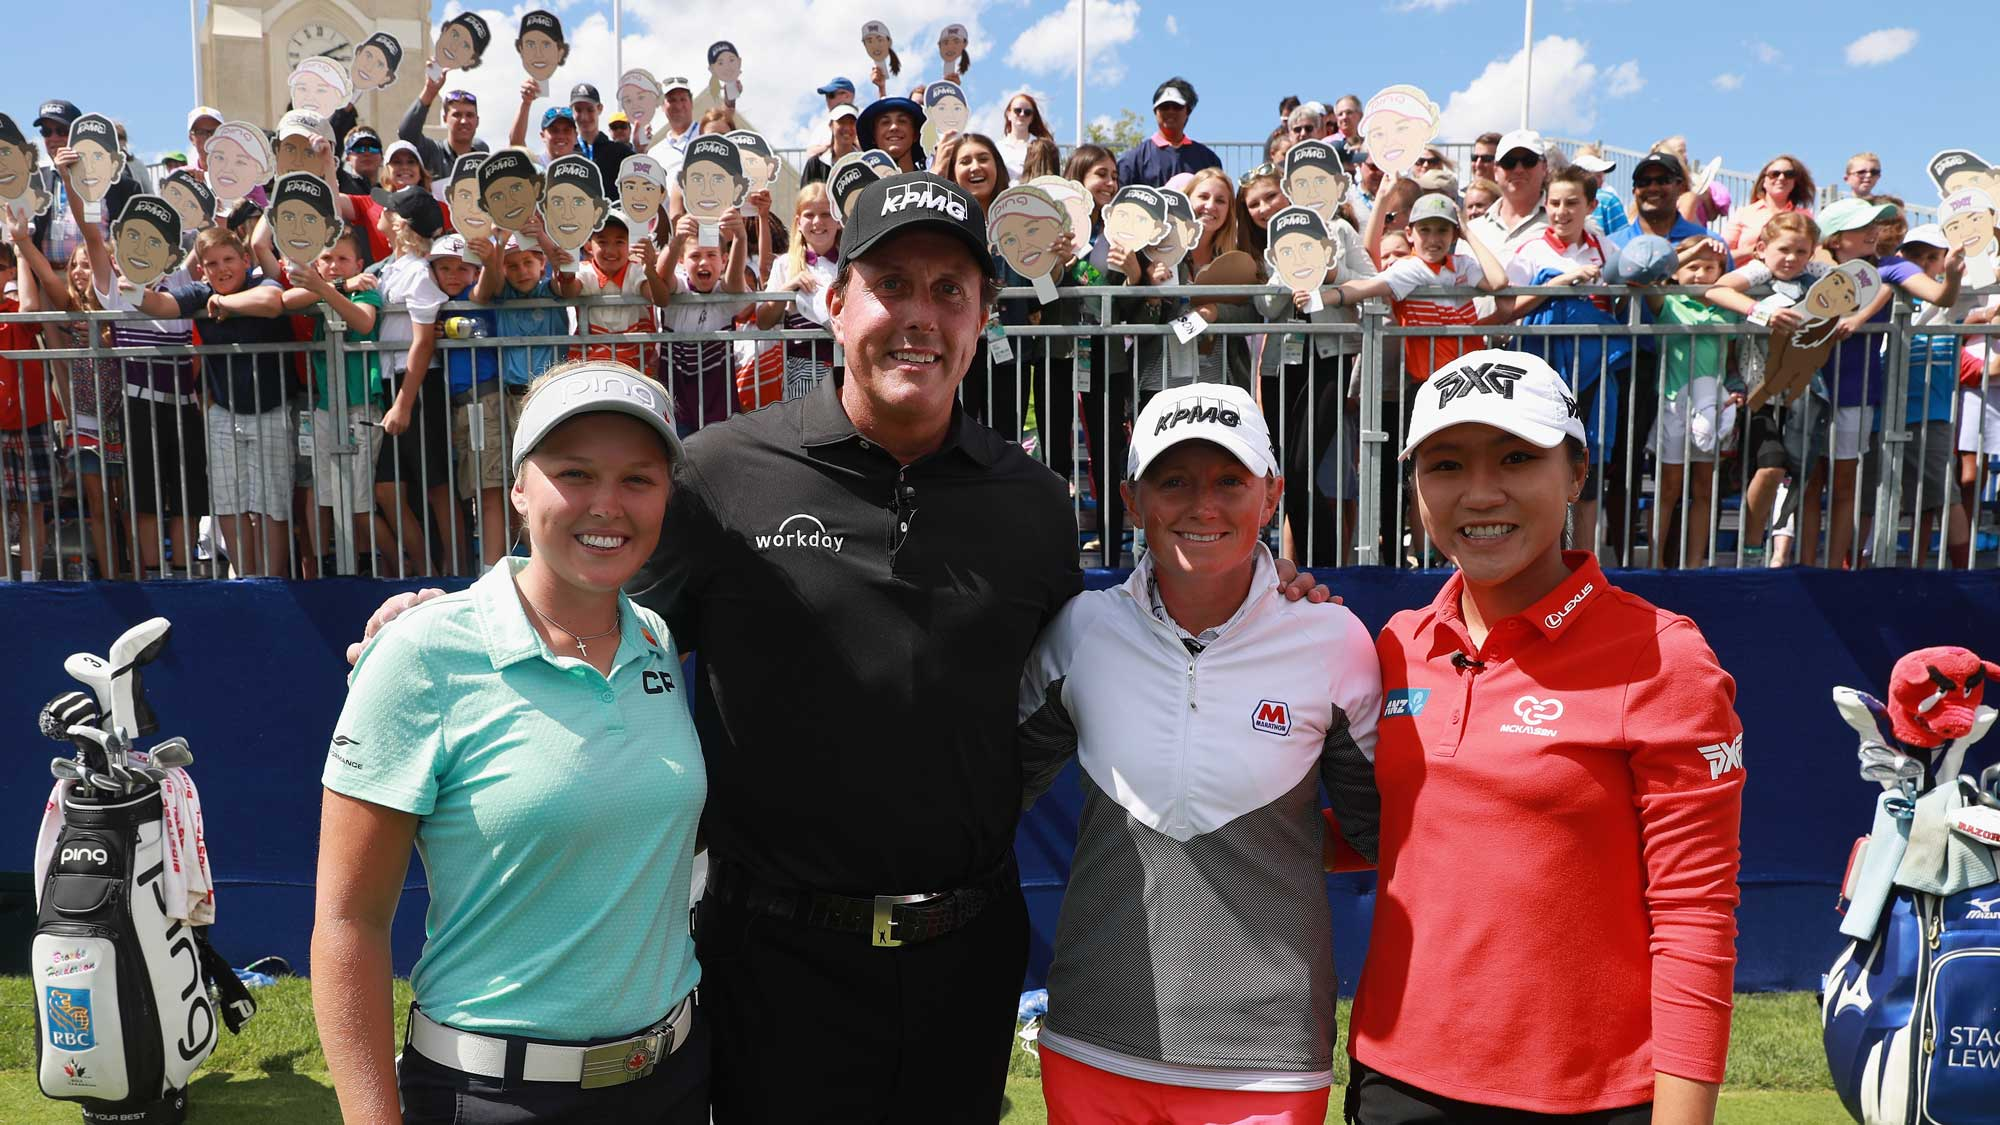 (L-R) Brooke Henderson, Phil Mickelson, Stacy Lewis and Lydia Ko pose together during a skills challenge prior to the start of the 2017 KPMG Women's PGA Championship